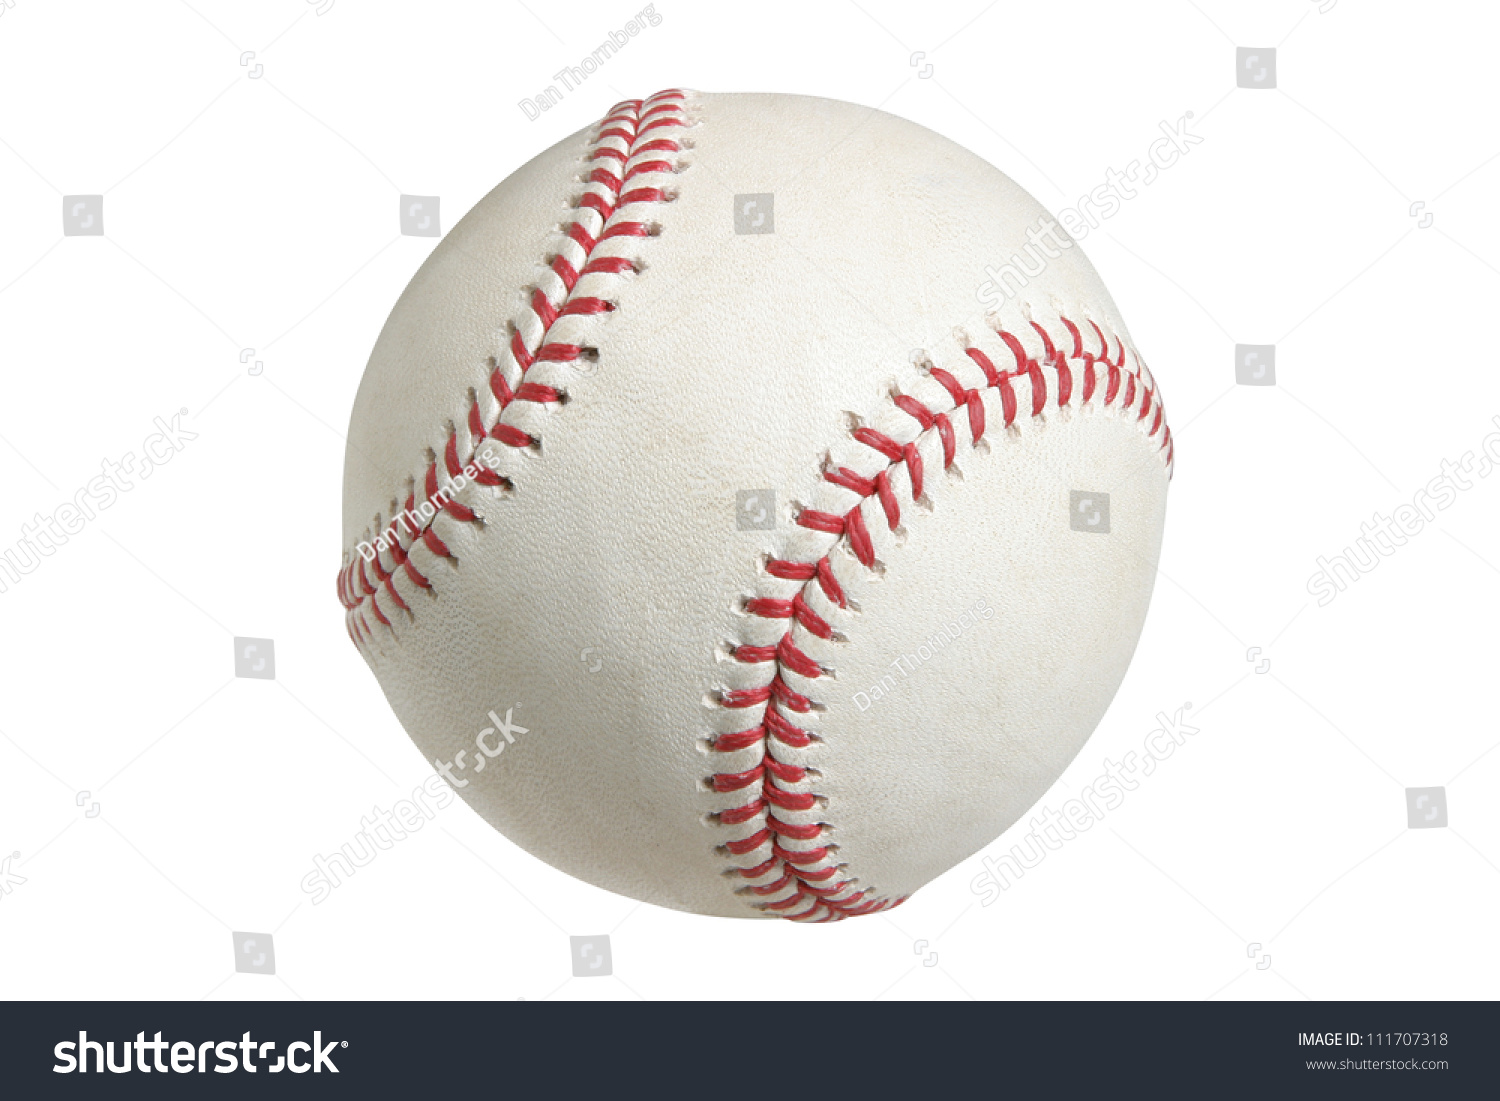 Baseball isolated on white with clipping path #111707318